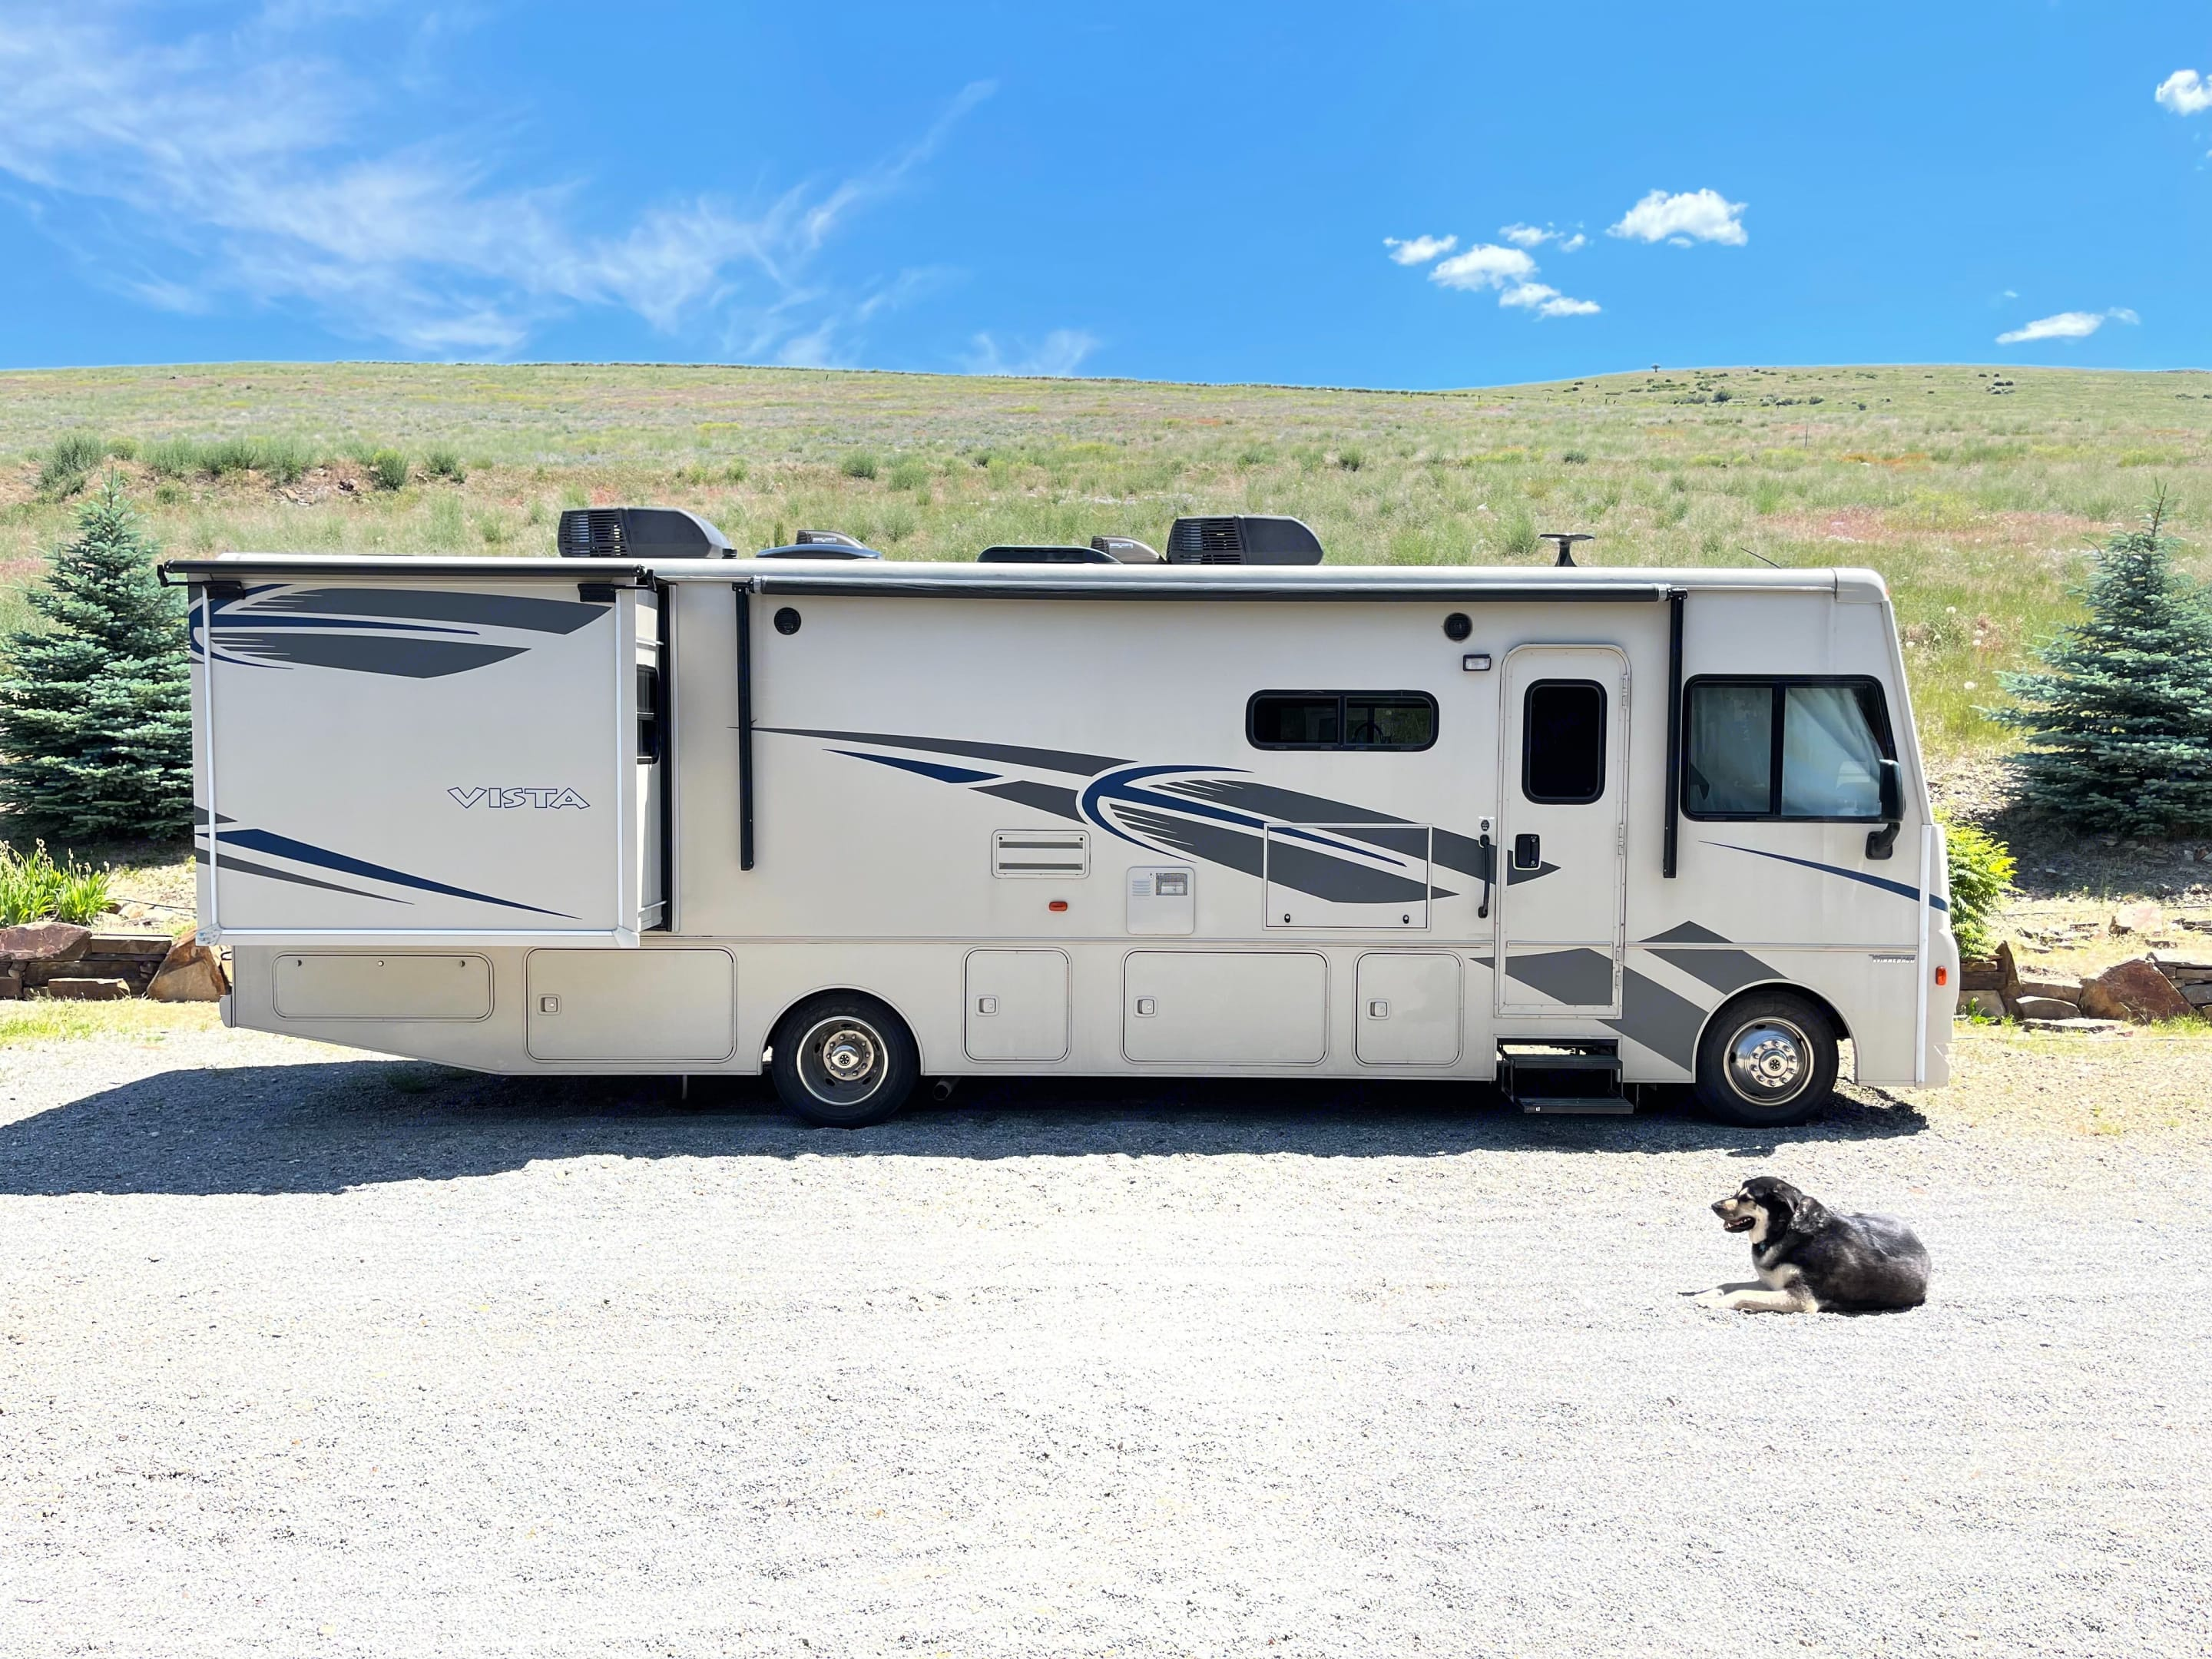 Get out and enjoy new adventures with your family under the wild western skies. Pick your destination and hit the open road in comfort.. Winnebago Vista 2018